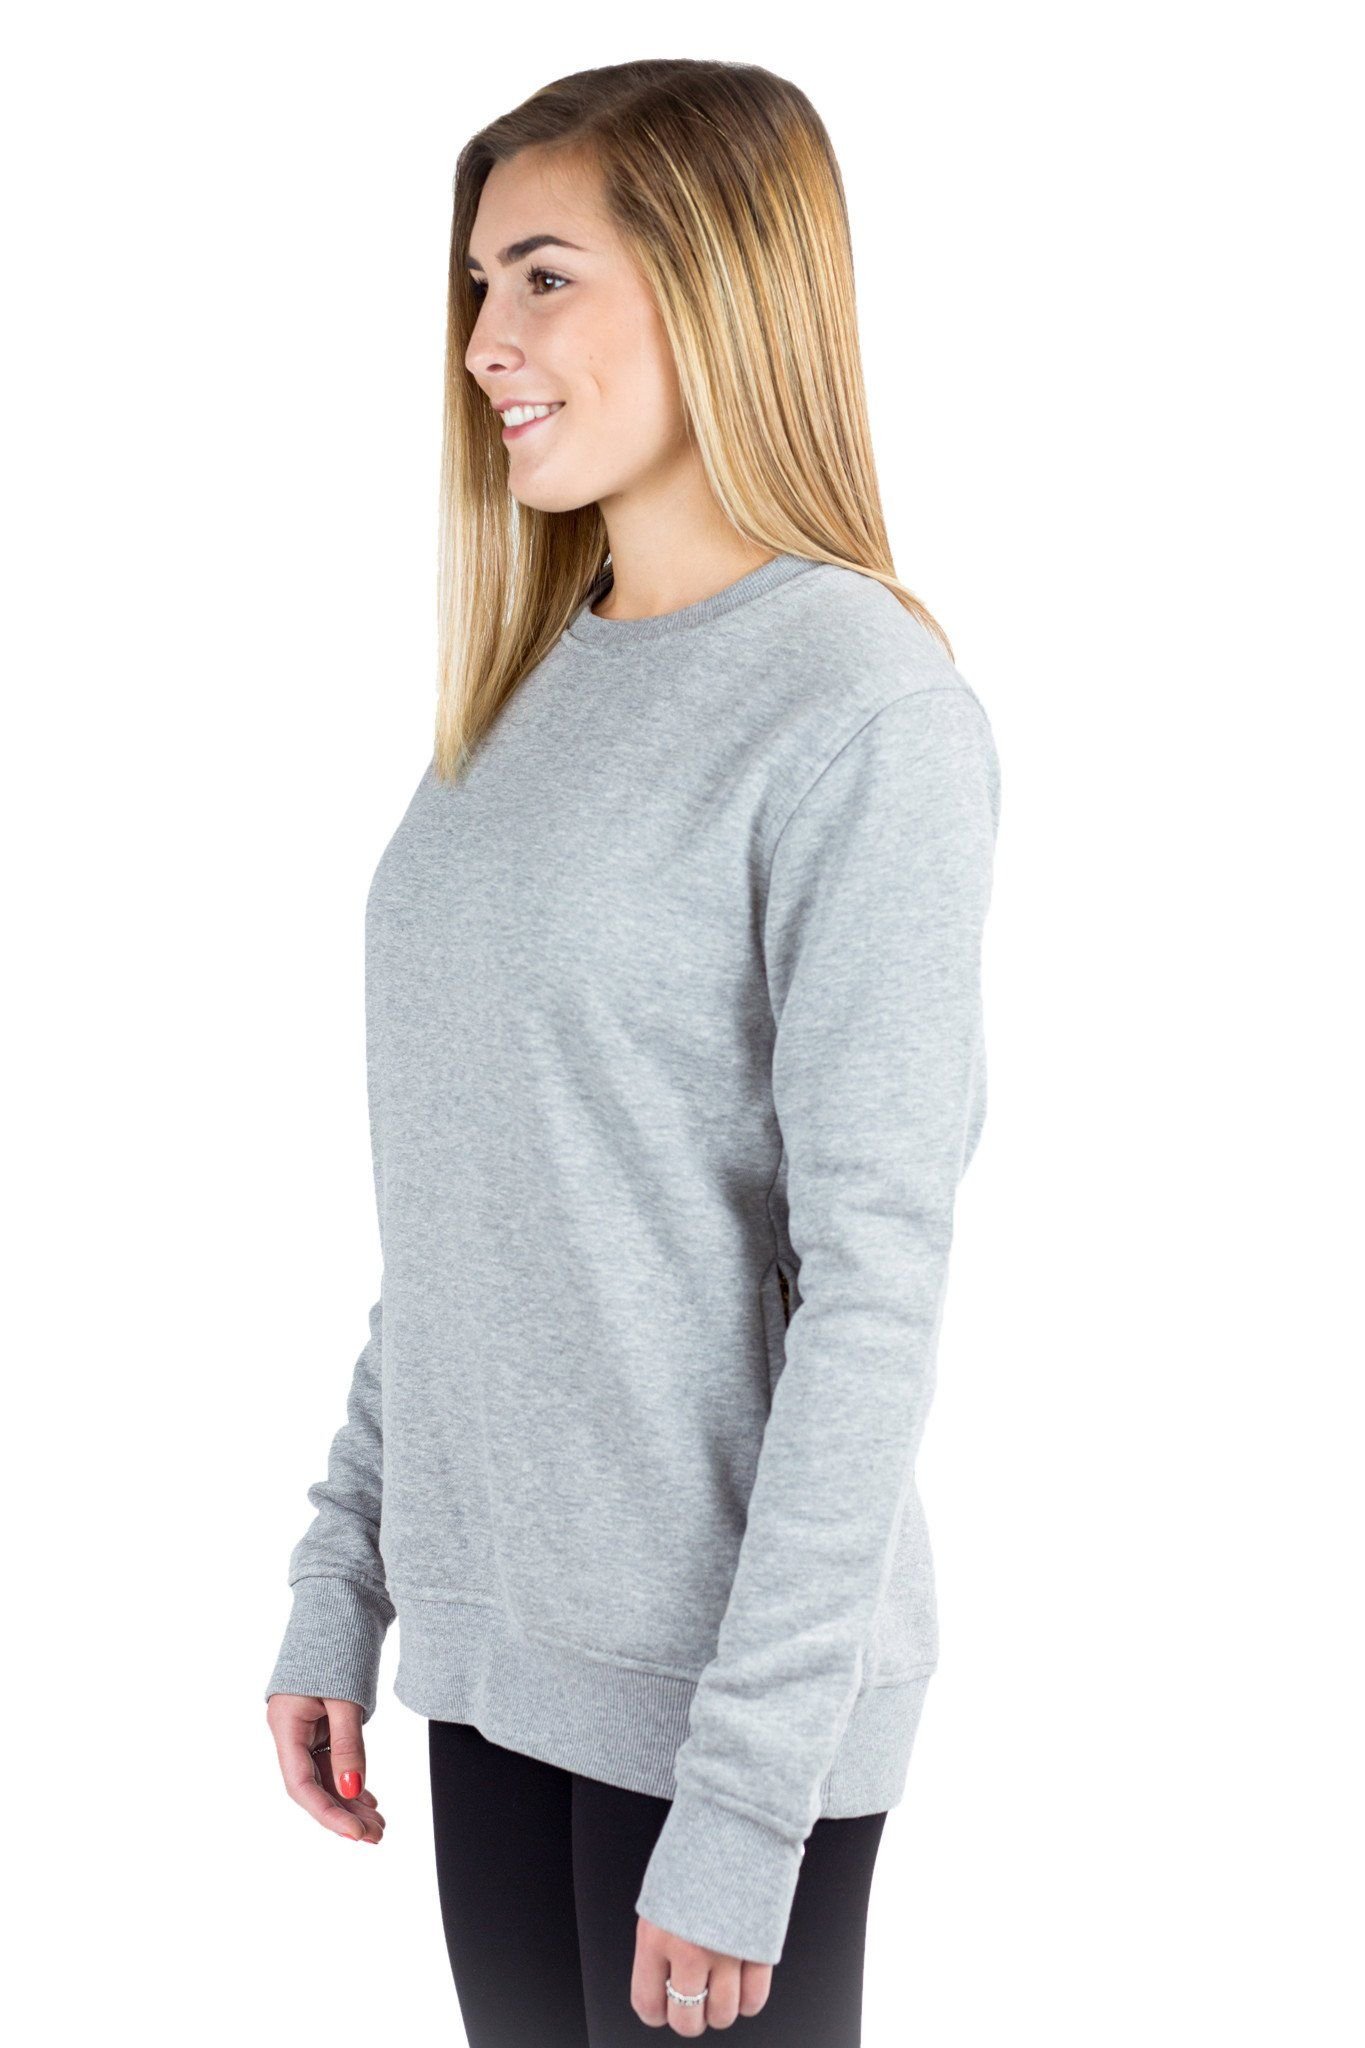 3ce8c6d56954 Women Grey Plain Fleece Crewneck Sweatshirt Long sleeve with zip side  pockets from Just Like Hero. For men and women. Best friends, couples,  family outfit.